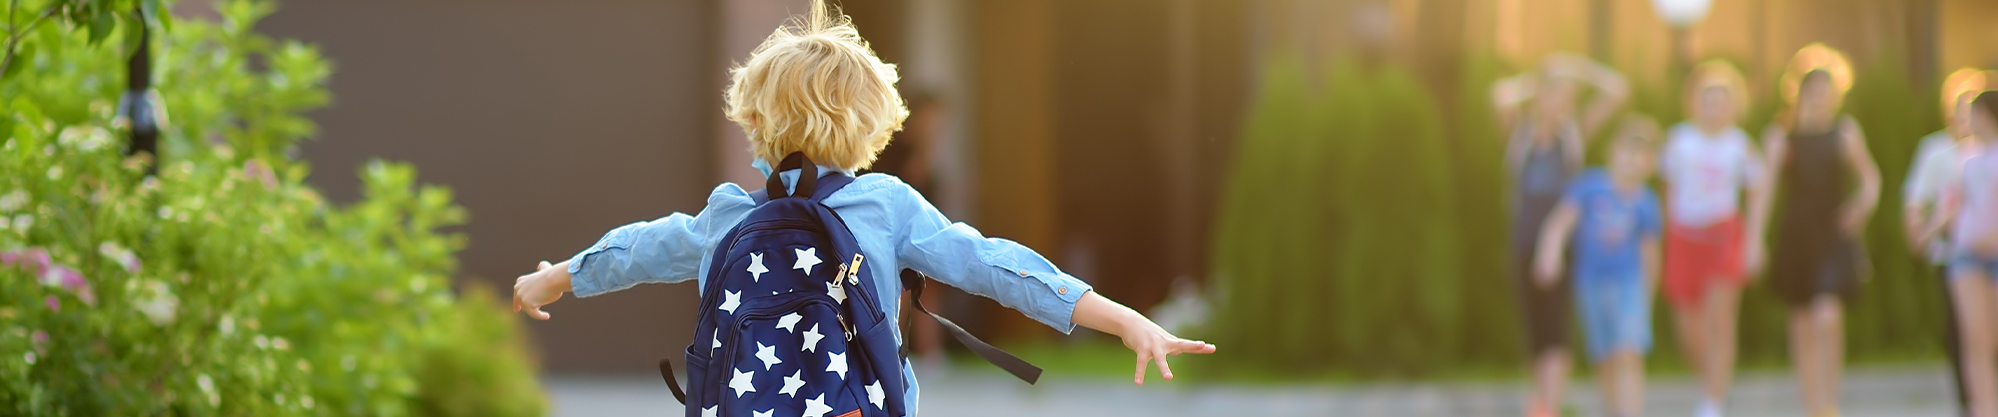 Student with backpack happily running towards school